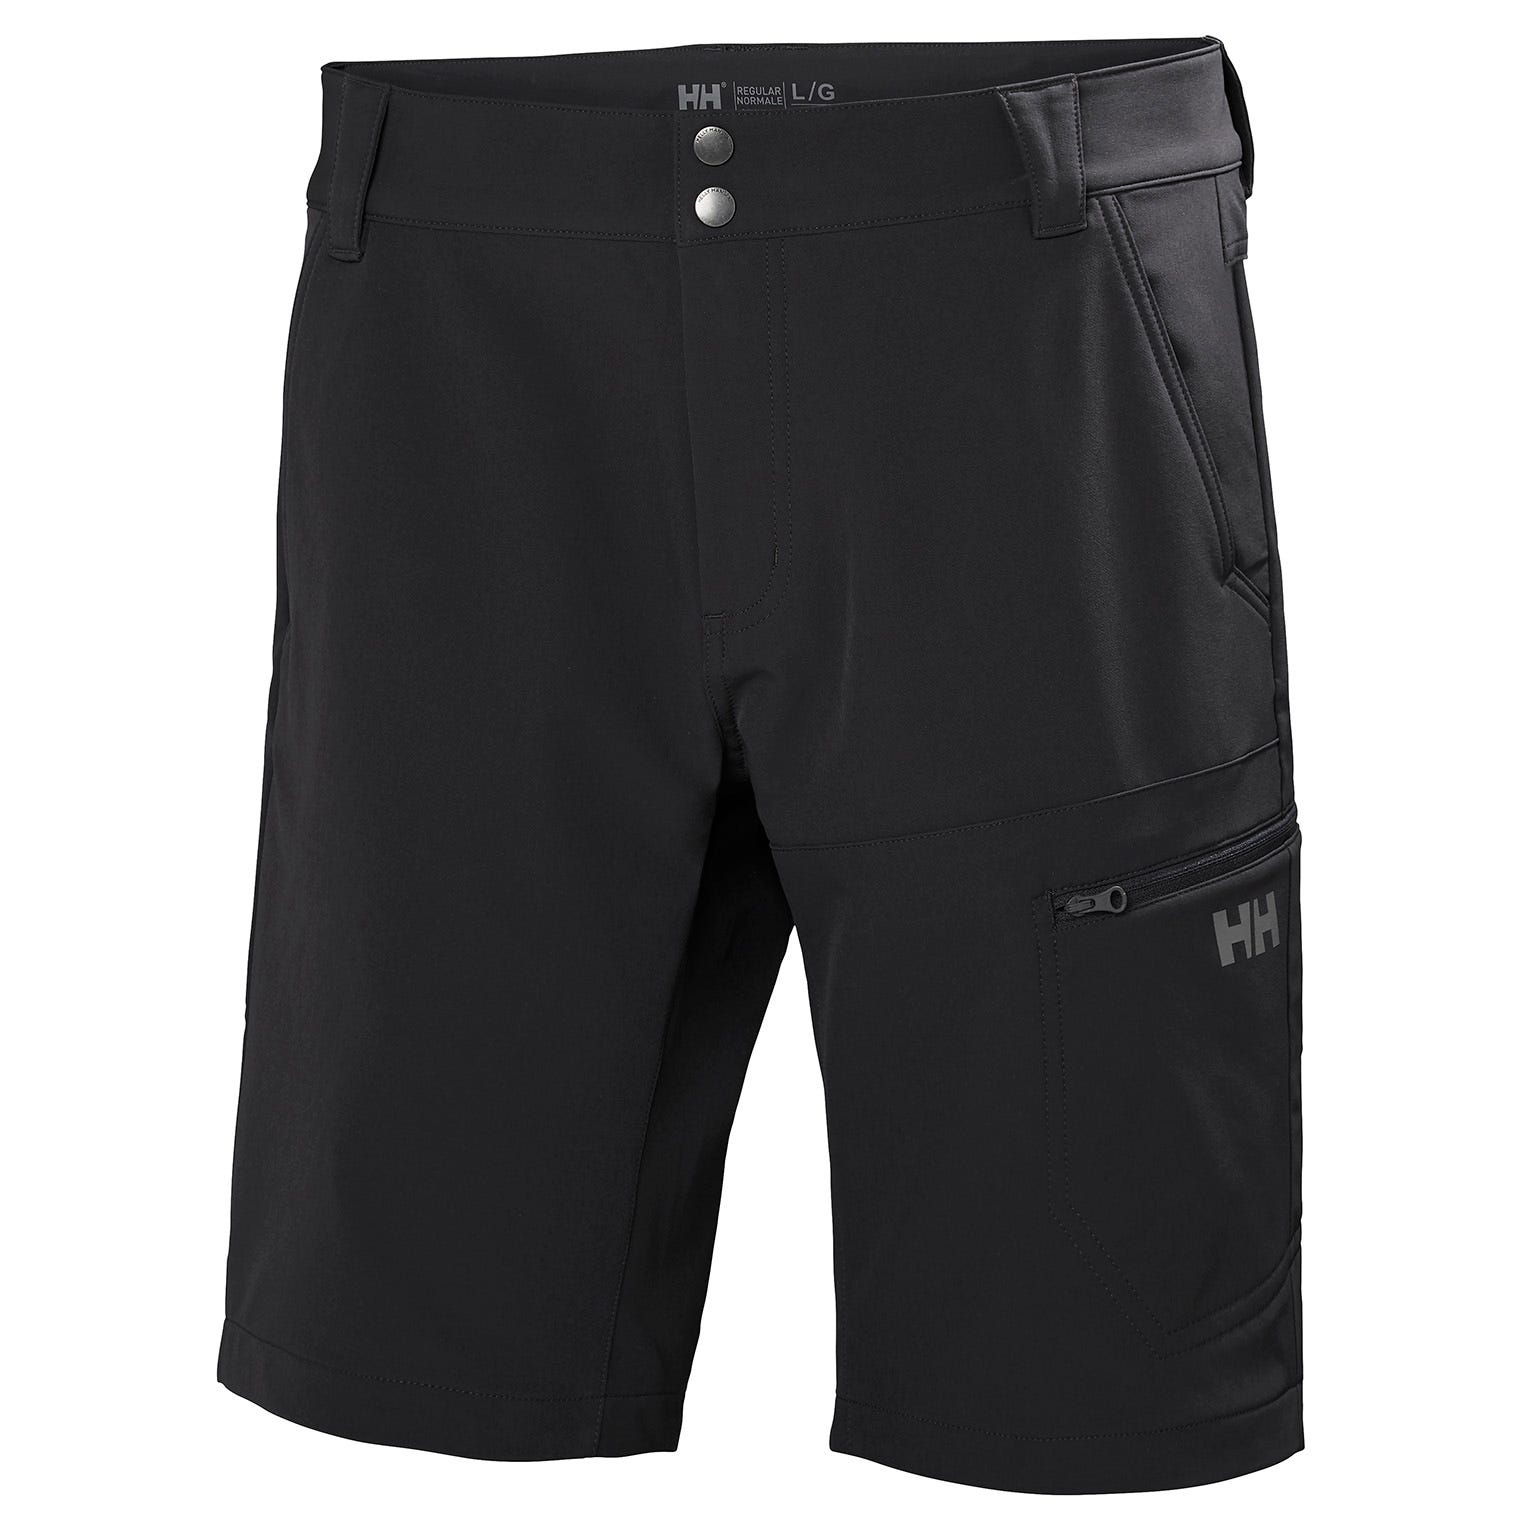 Brono Shorts | Water-repellant Softshell Gb Helly Hansen Mens Hiking Trouser Black S